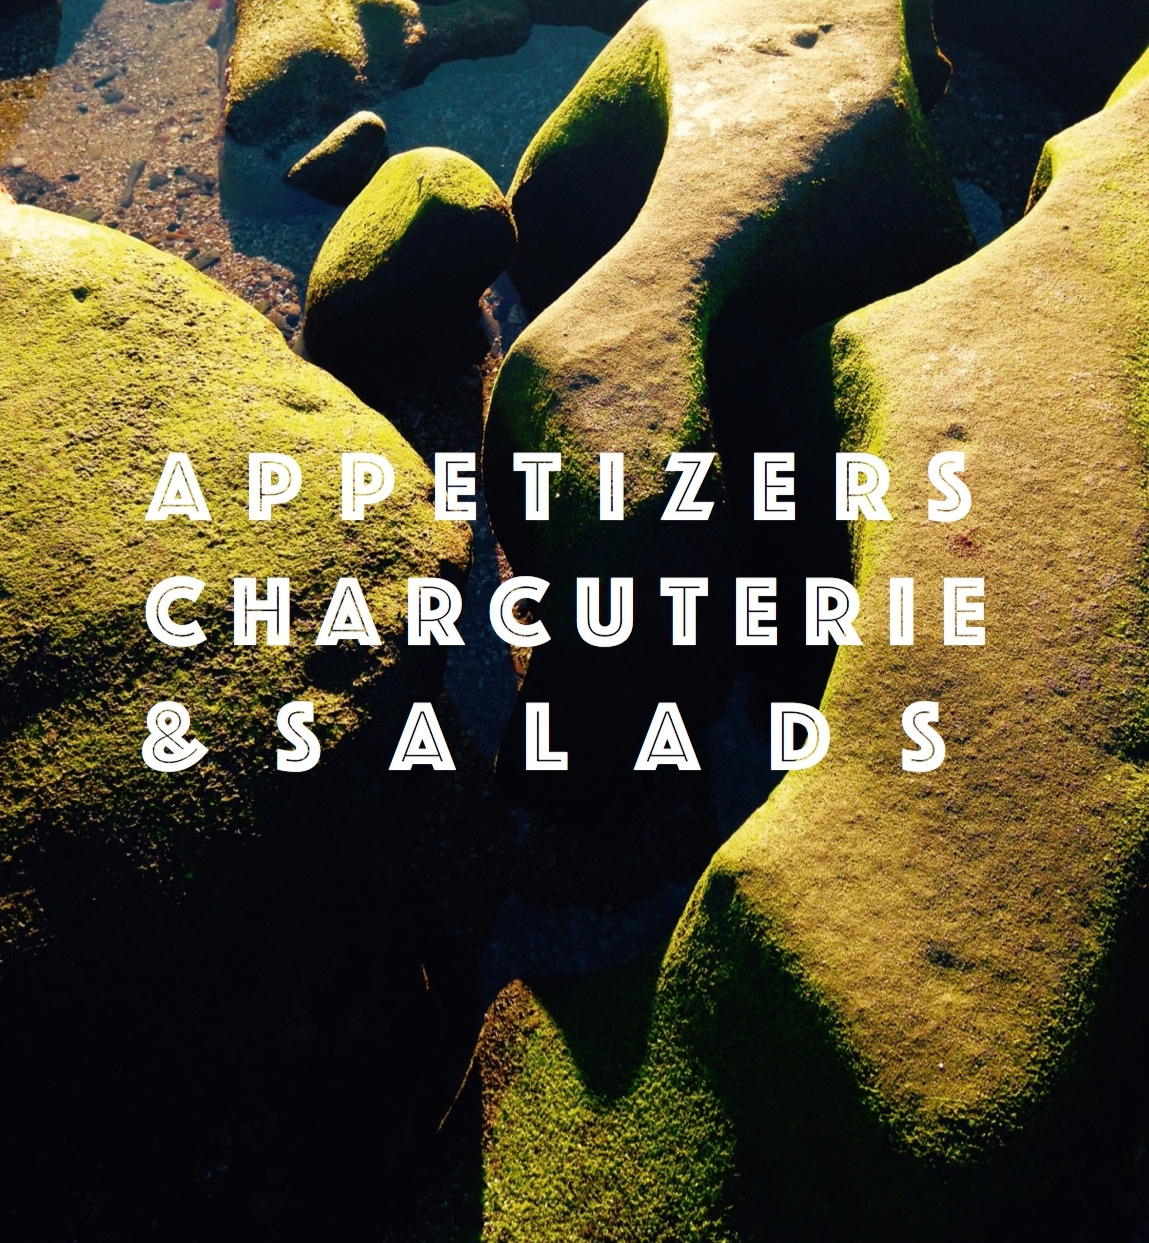 apps, charcuterie & salads.jpg